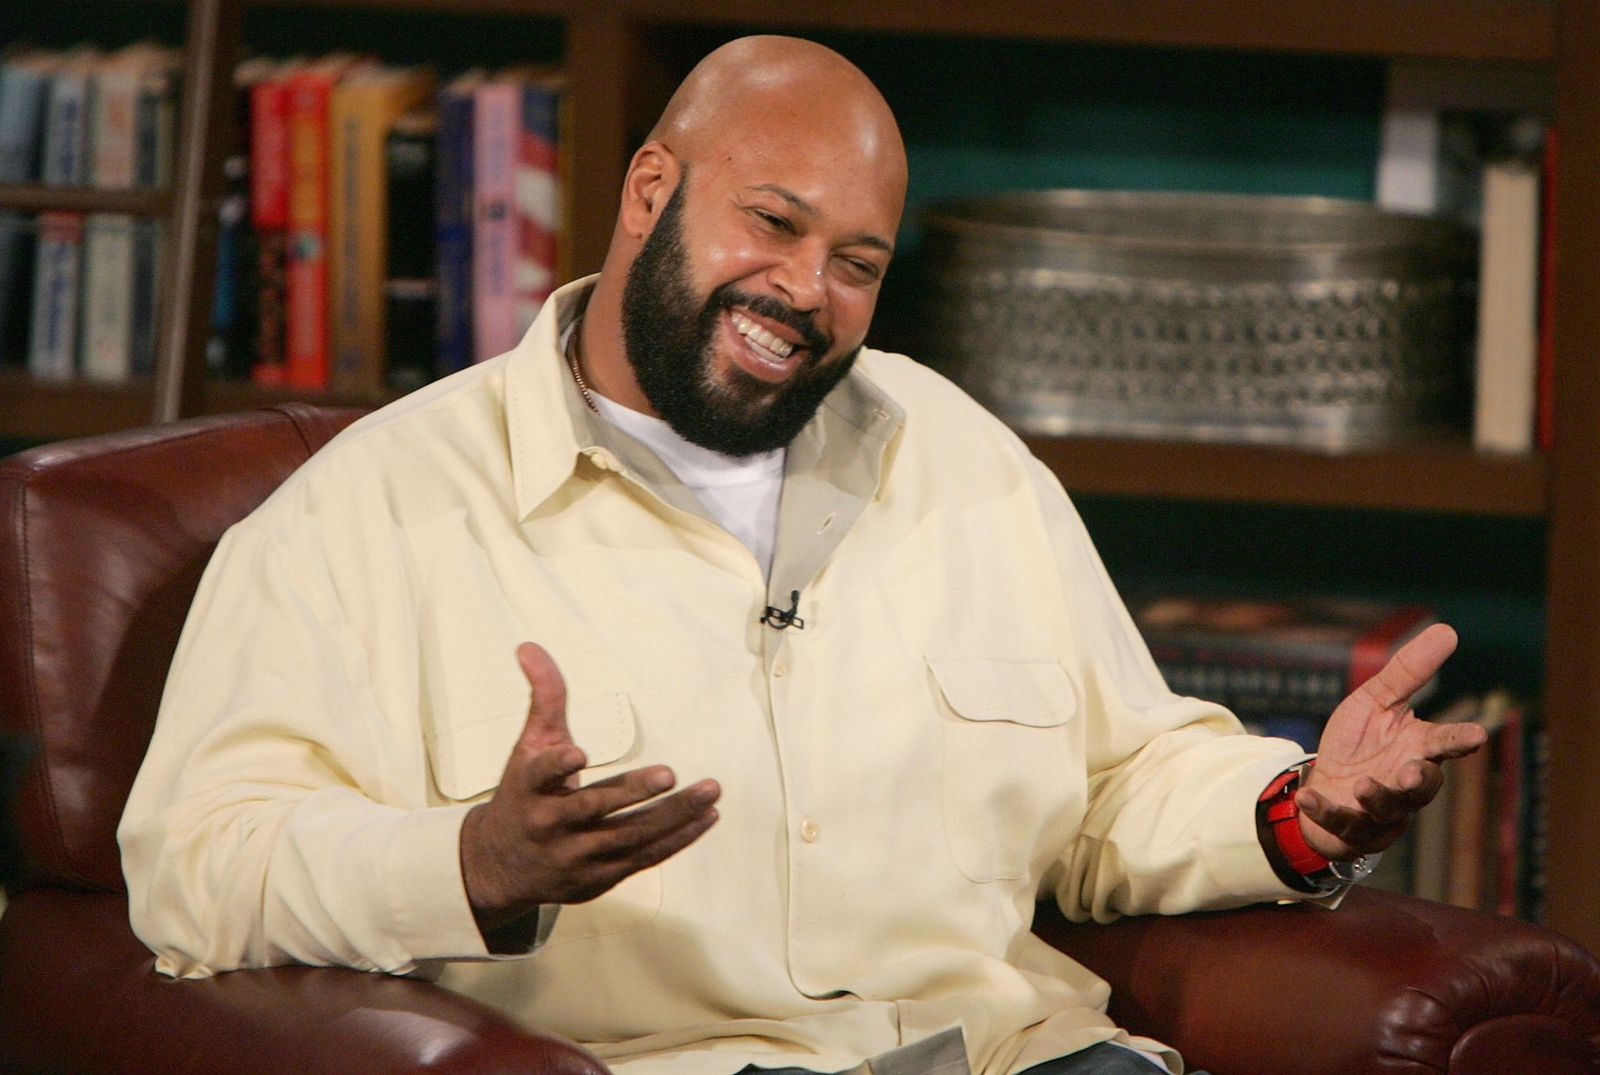 """Suge Knight appears at CBS Studios for a taping of """"The Late Late Show"""" on November 18, 2004 in Los Angeles, California. 